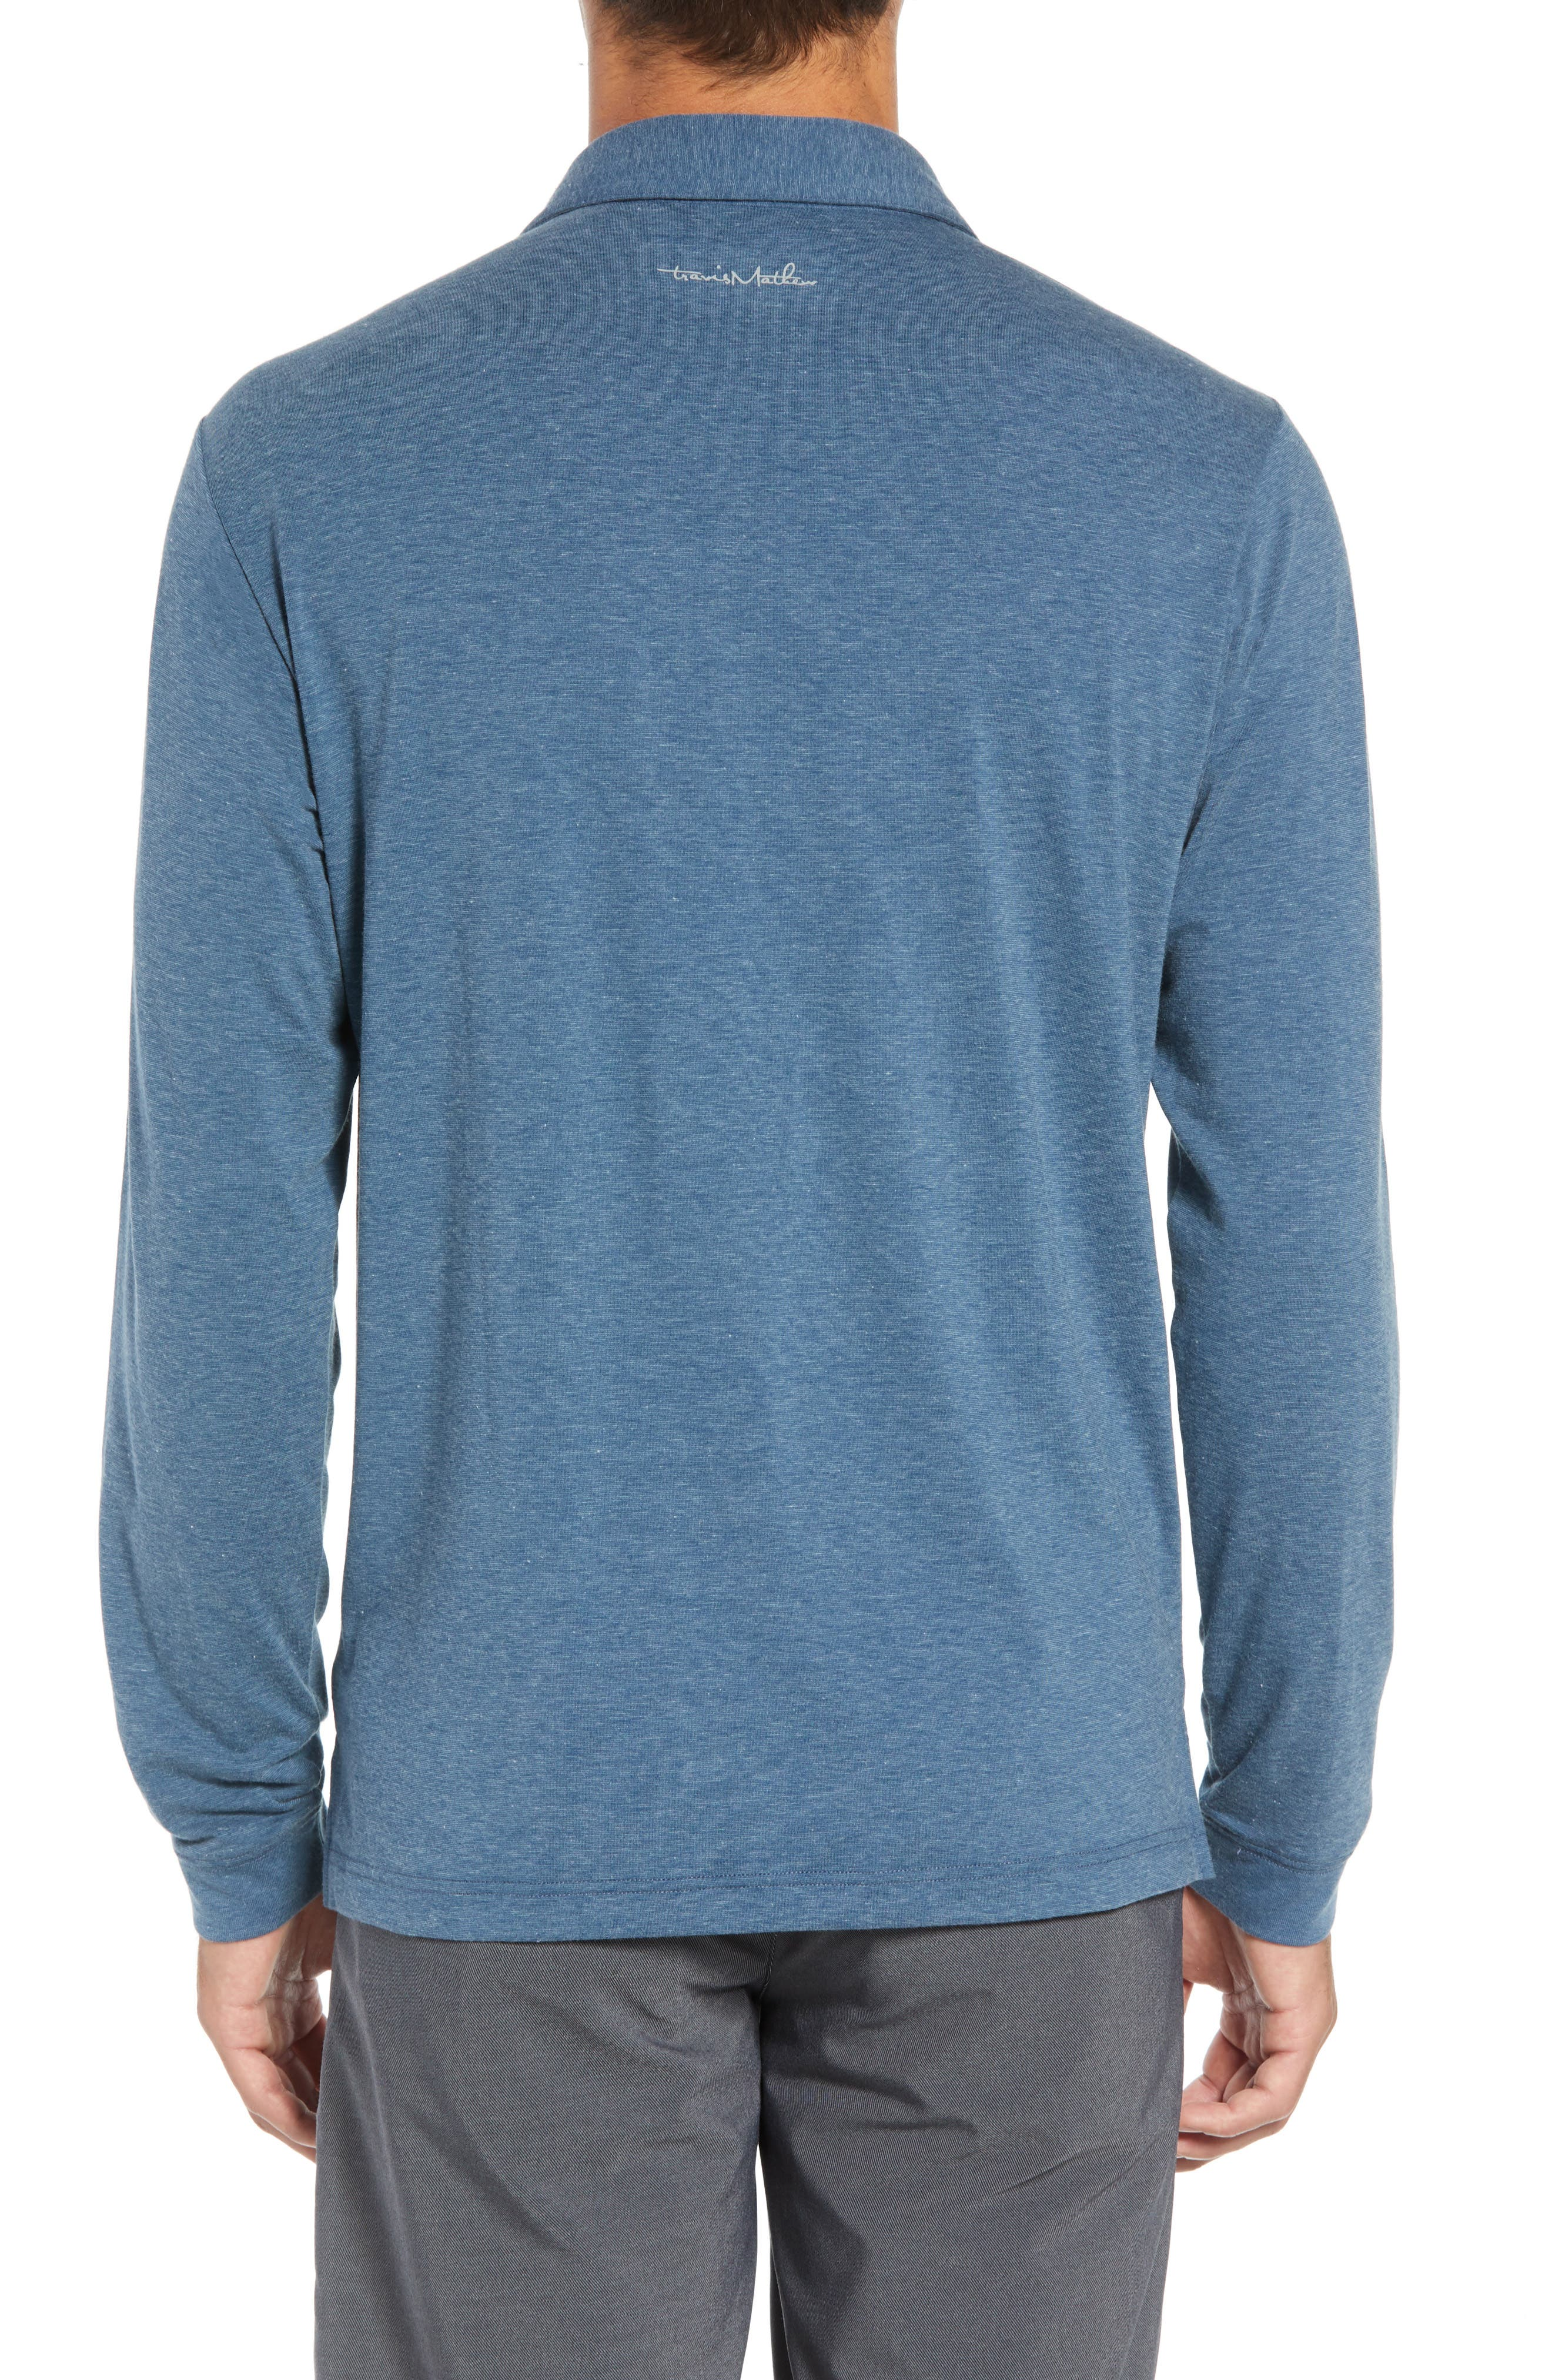 Backup Plan Regular Fit Polo,                             Alternate thumbnail 2, color,                             TRADEWINDS/ BLUE WING TEAL